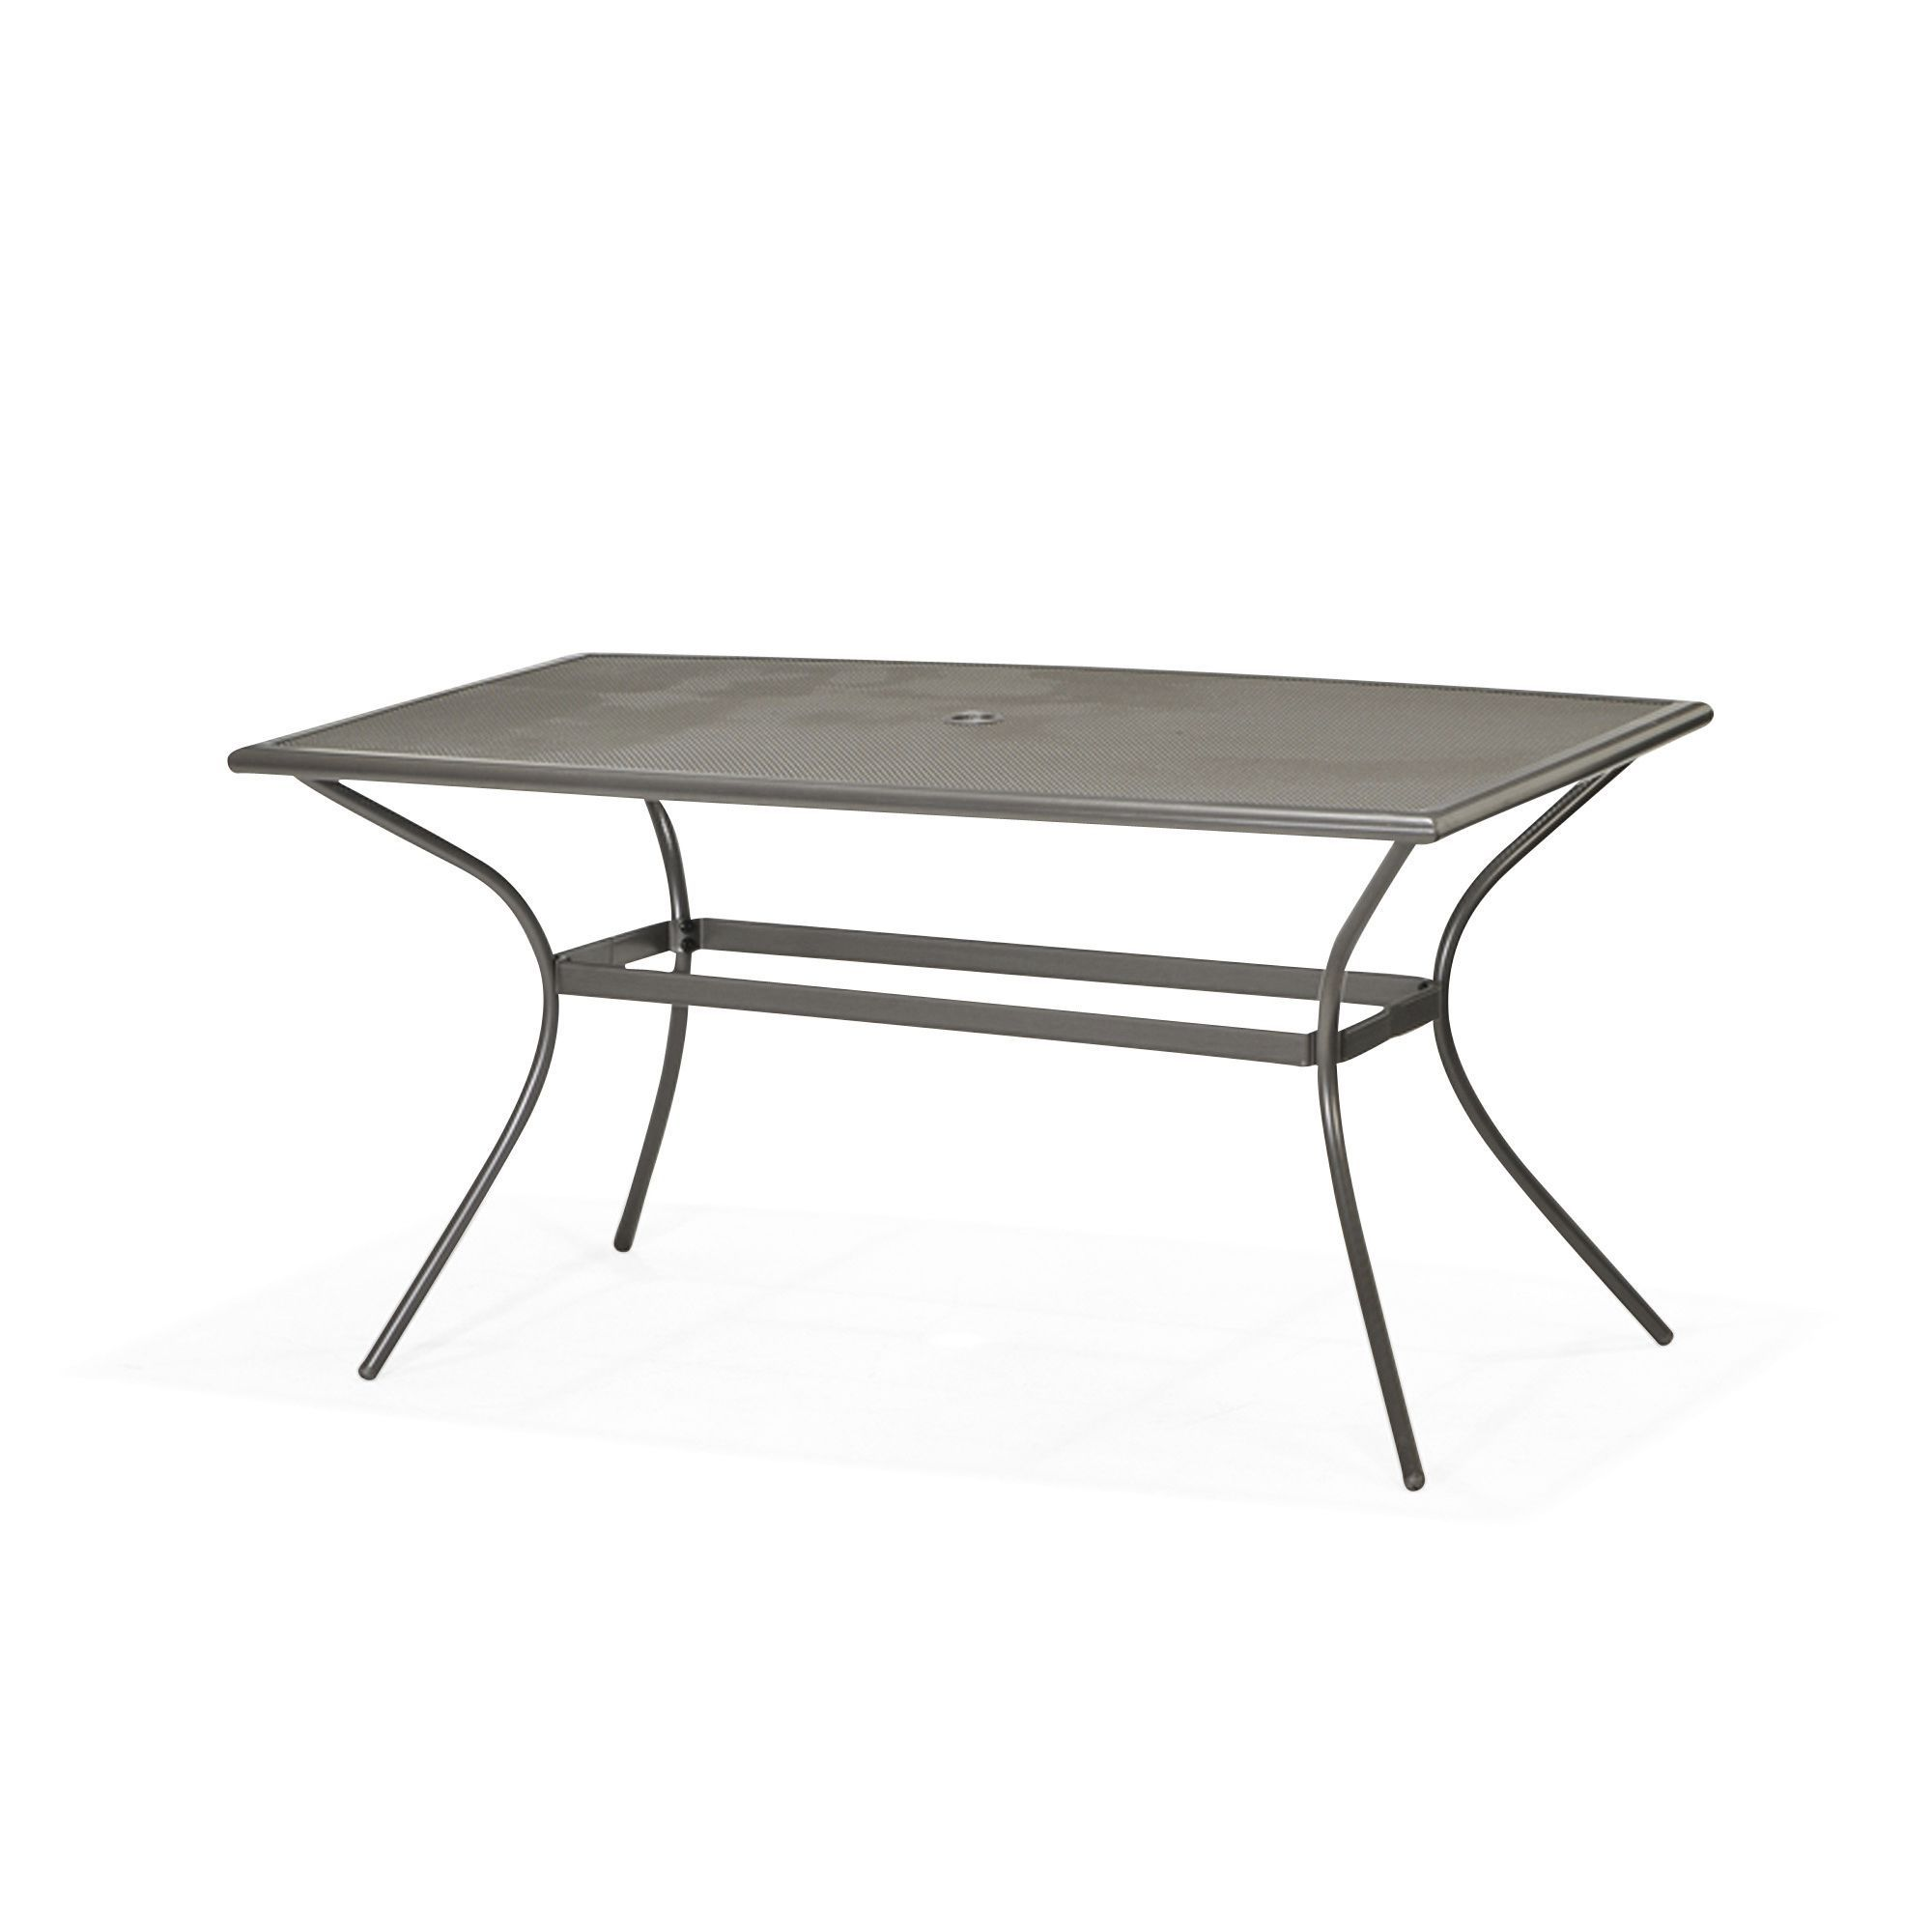 66520d441df07cff3982348065afe90b Meilleur De De Chaise Table A Manger